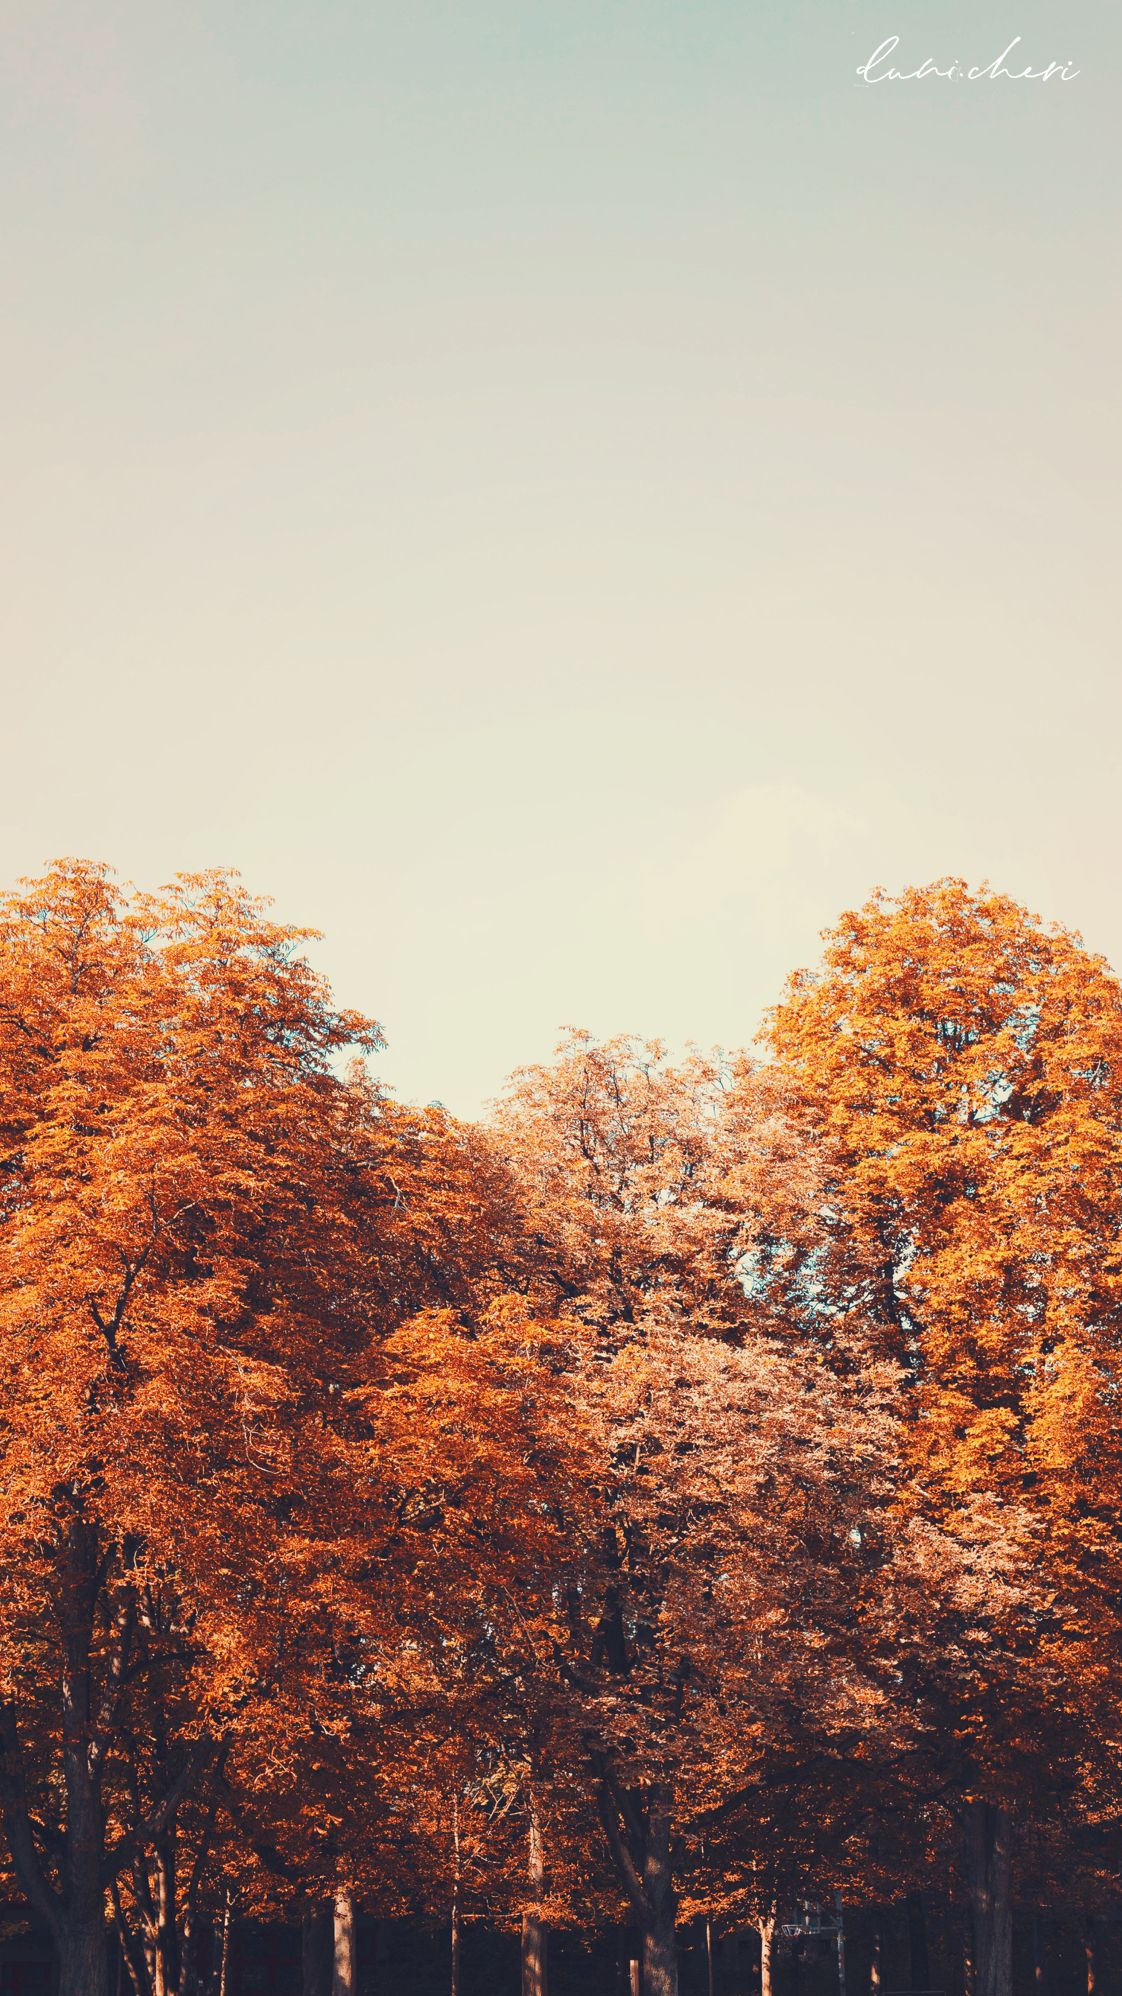 Free Download: Autumn Wallpaper ♥ Desktop & Mobile #falltumblr